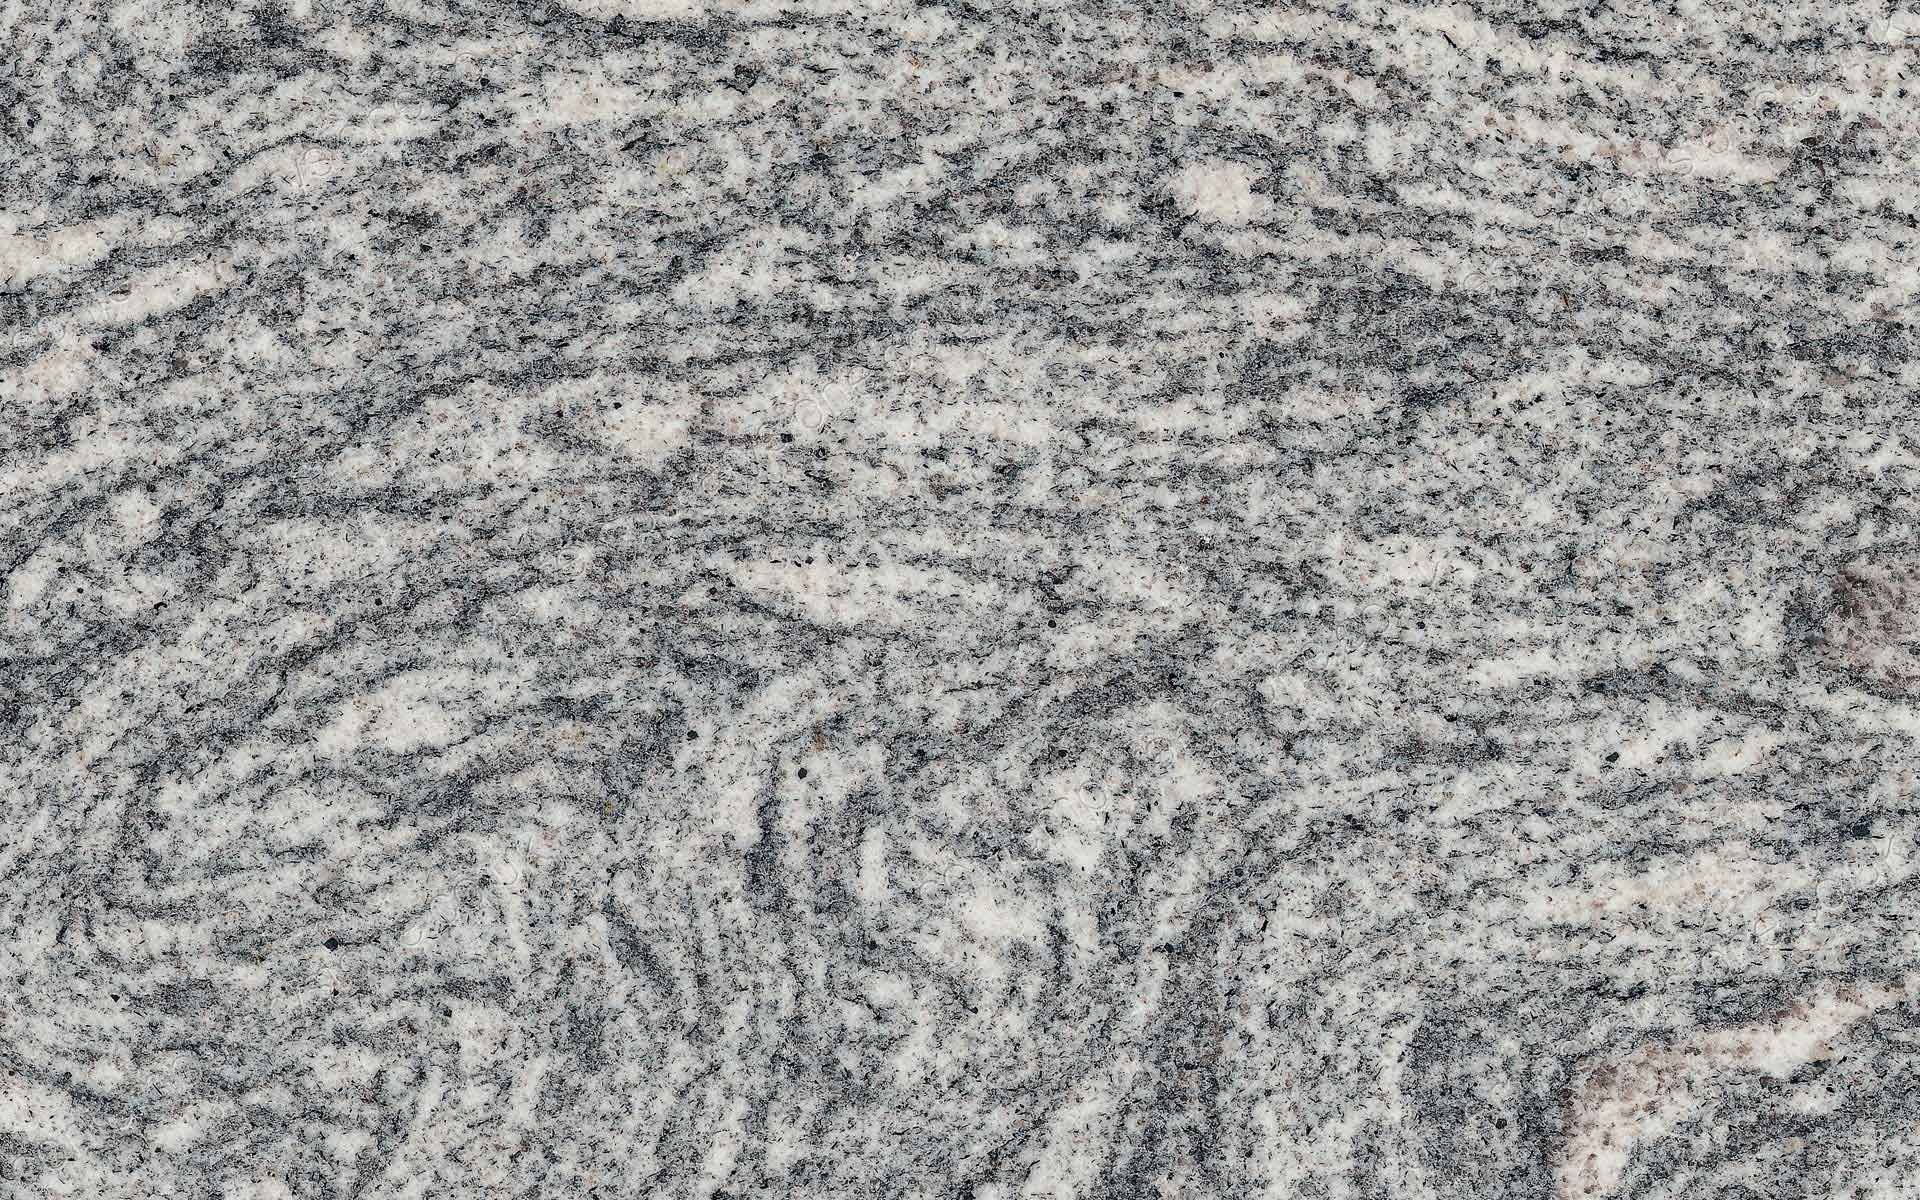 silver cloud granite close-up